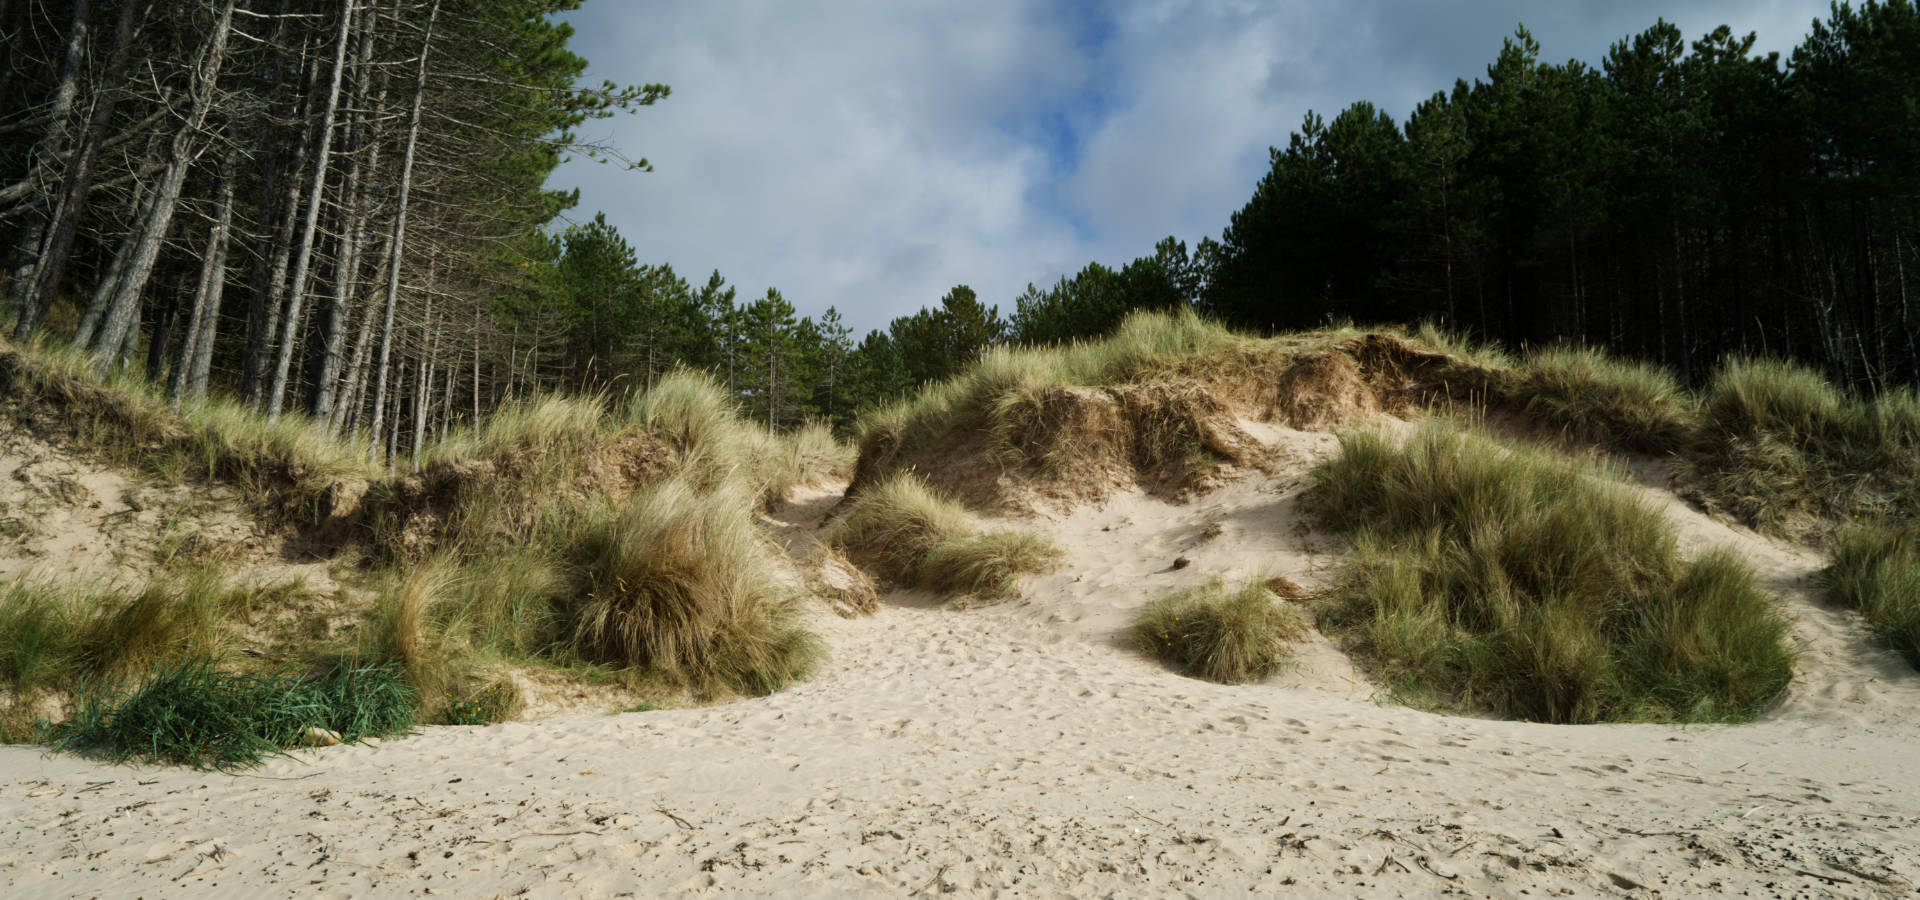 Burghead Beach sand dunes and forest